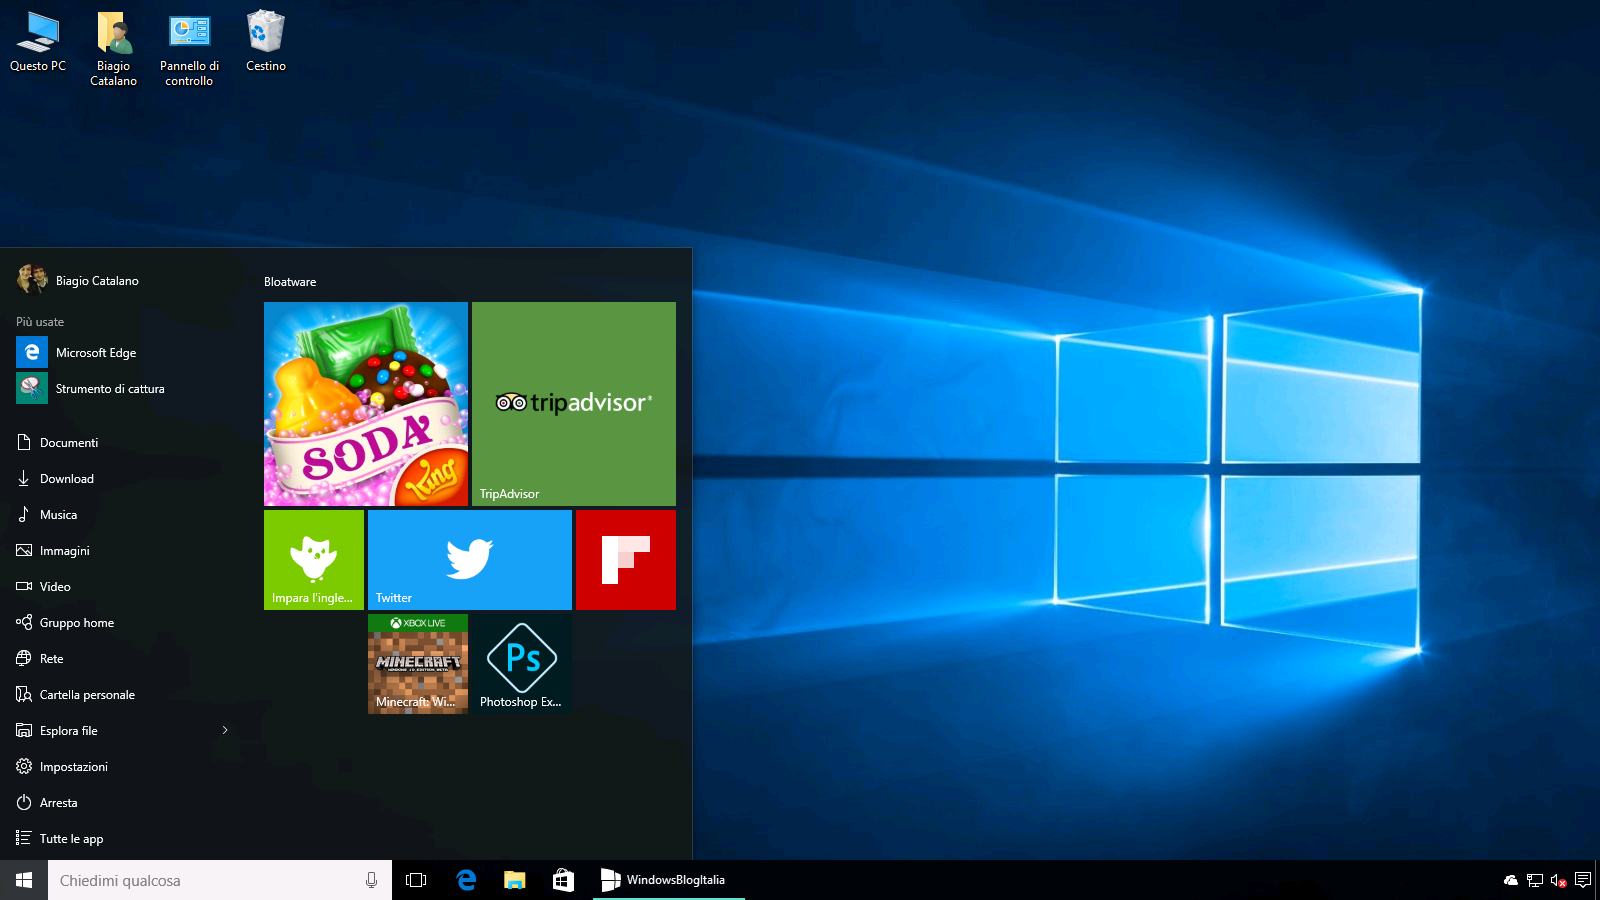 Bloatware Windows 10 - Impedire installazione app non desiderate